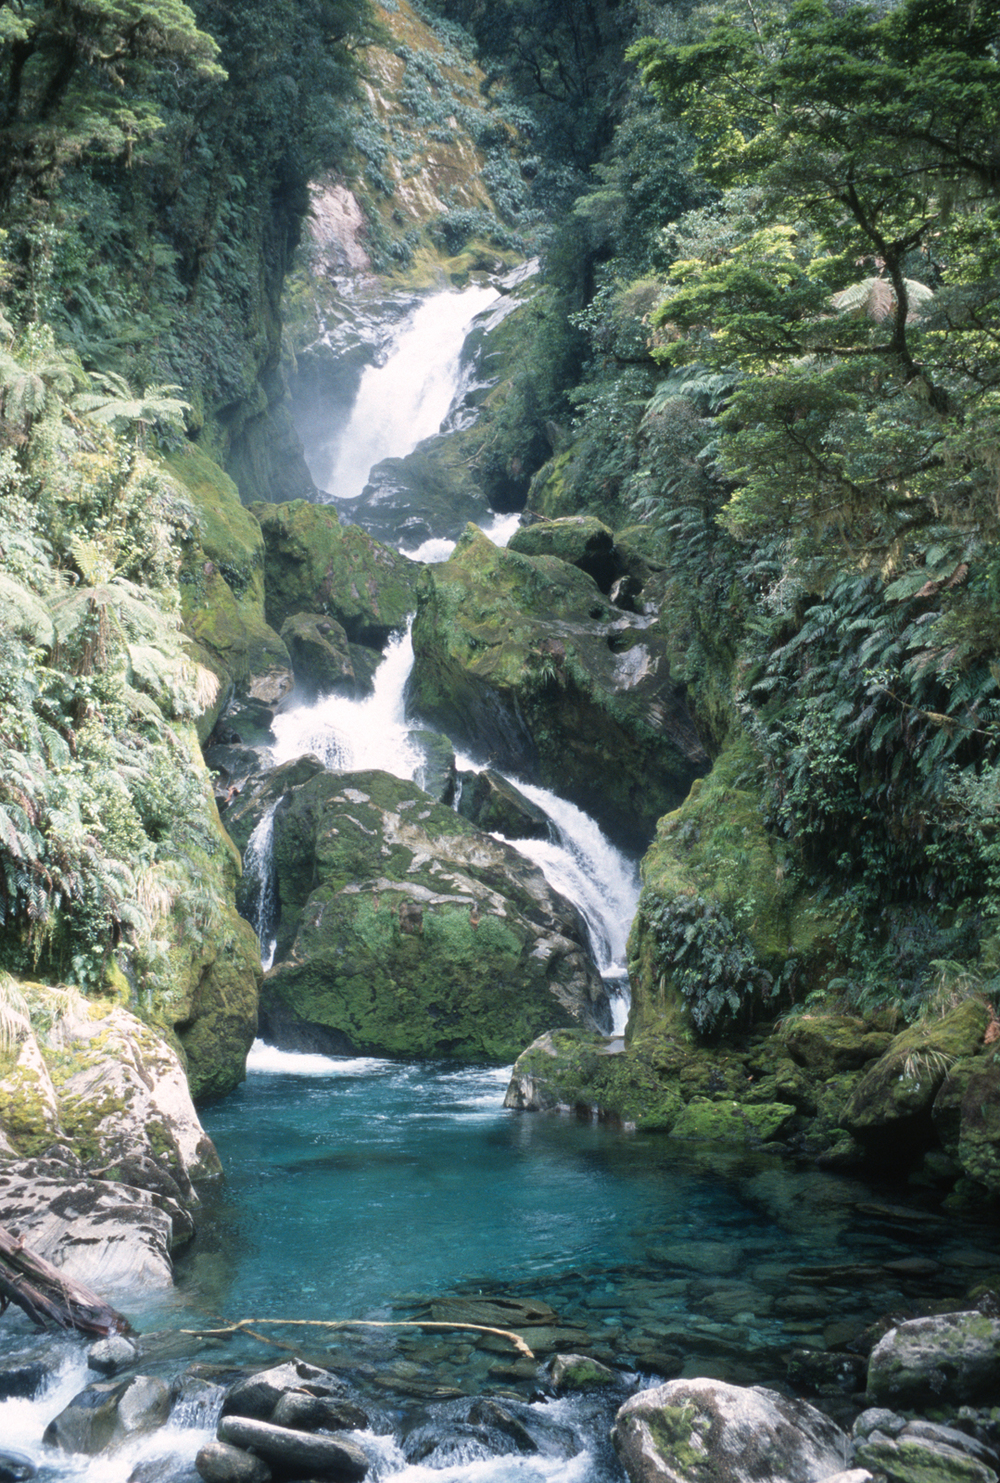 The rainforests of the Milford Track give rise to many waterfalls and cascades.